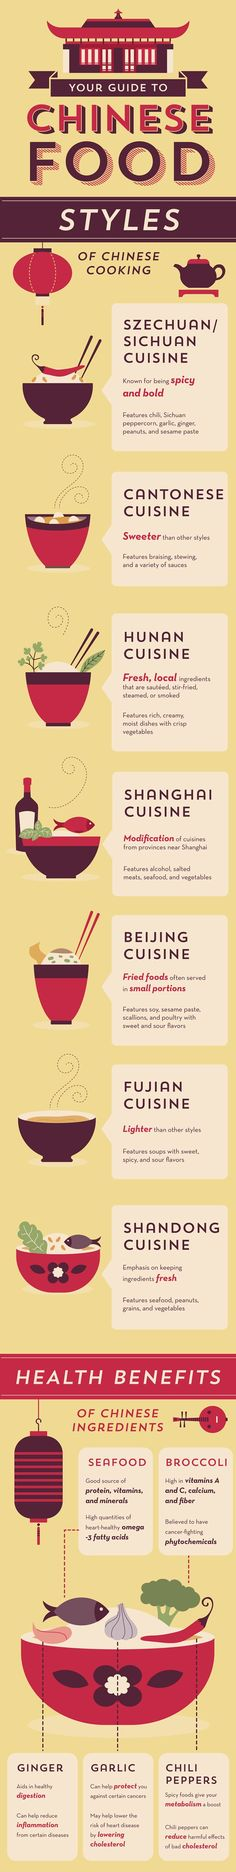 Your Very Own Chinese Cuisine Guide By Savannah Cox on September 28, 2013 in China, Curiosities, Food, and Infographics